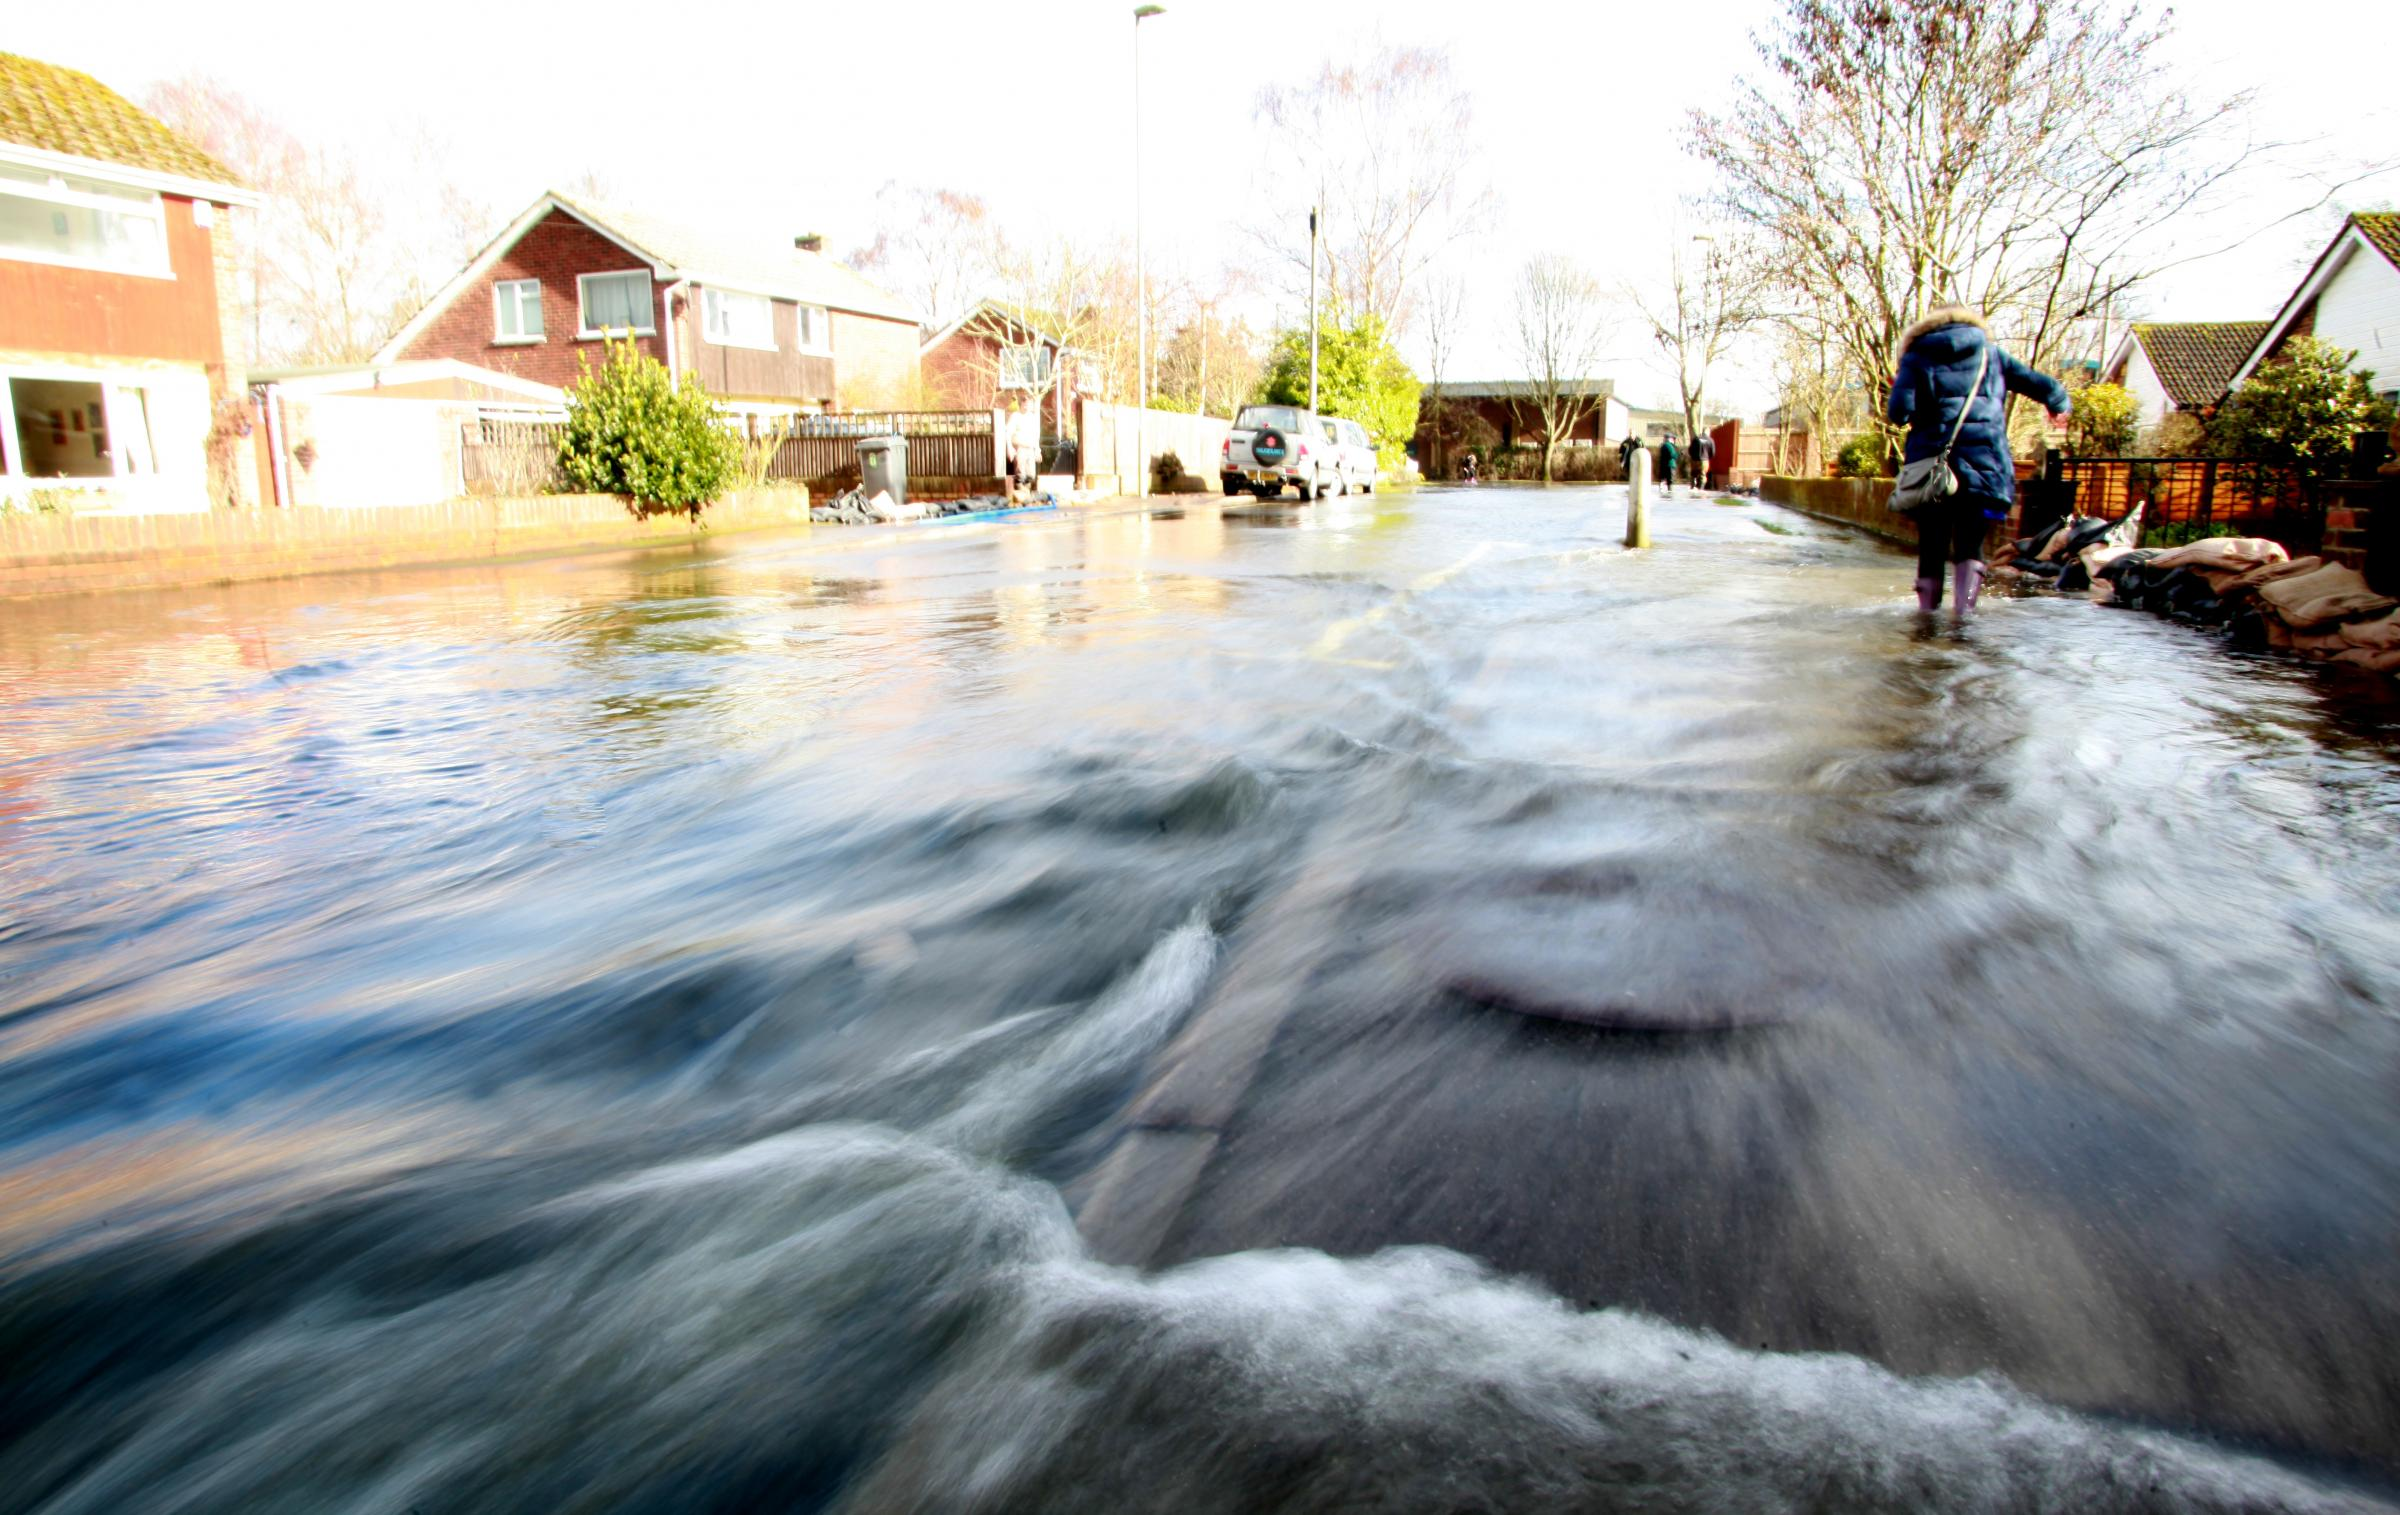 Give us time to prevent future floods